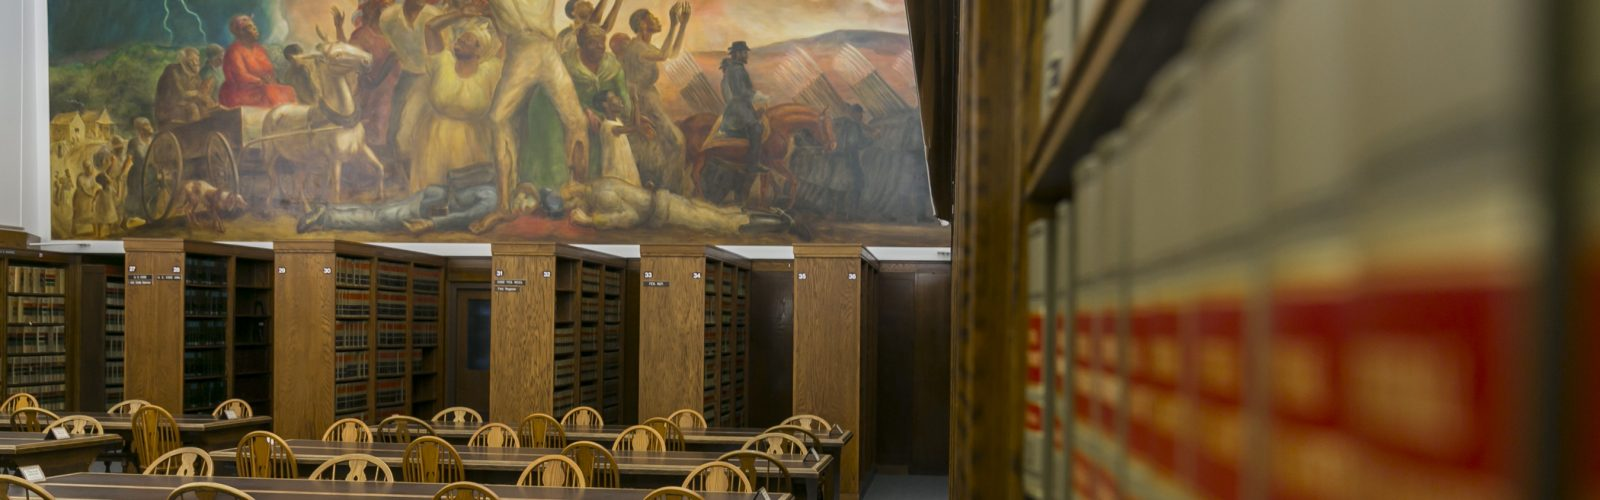 Old Reading Room with mural in background.